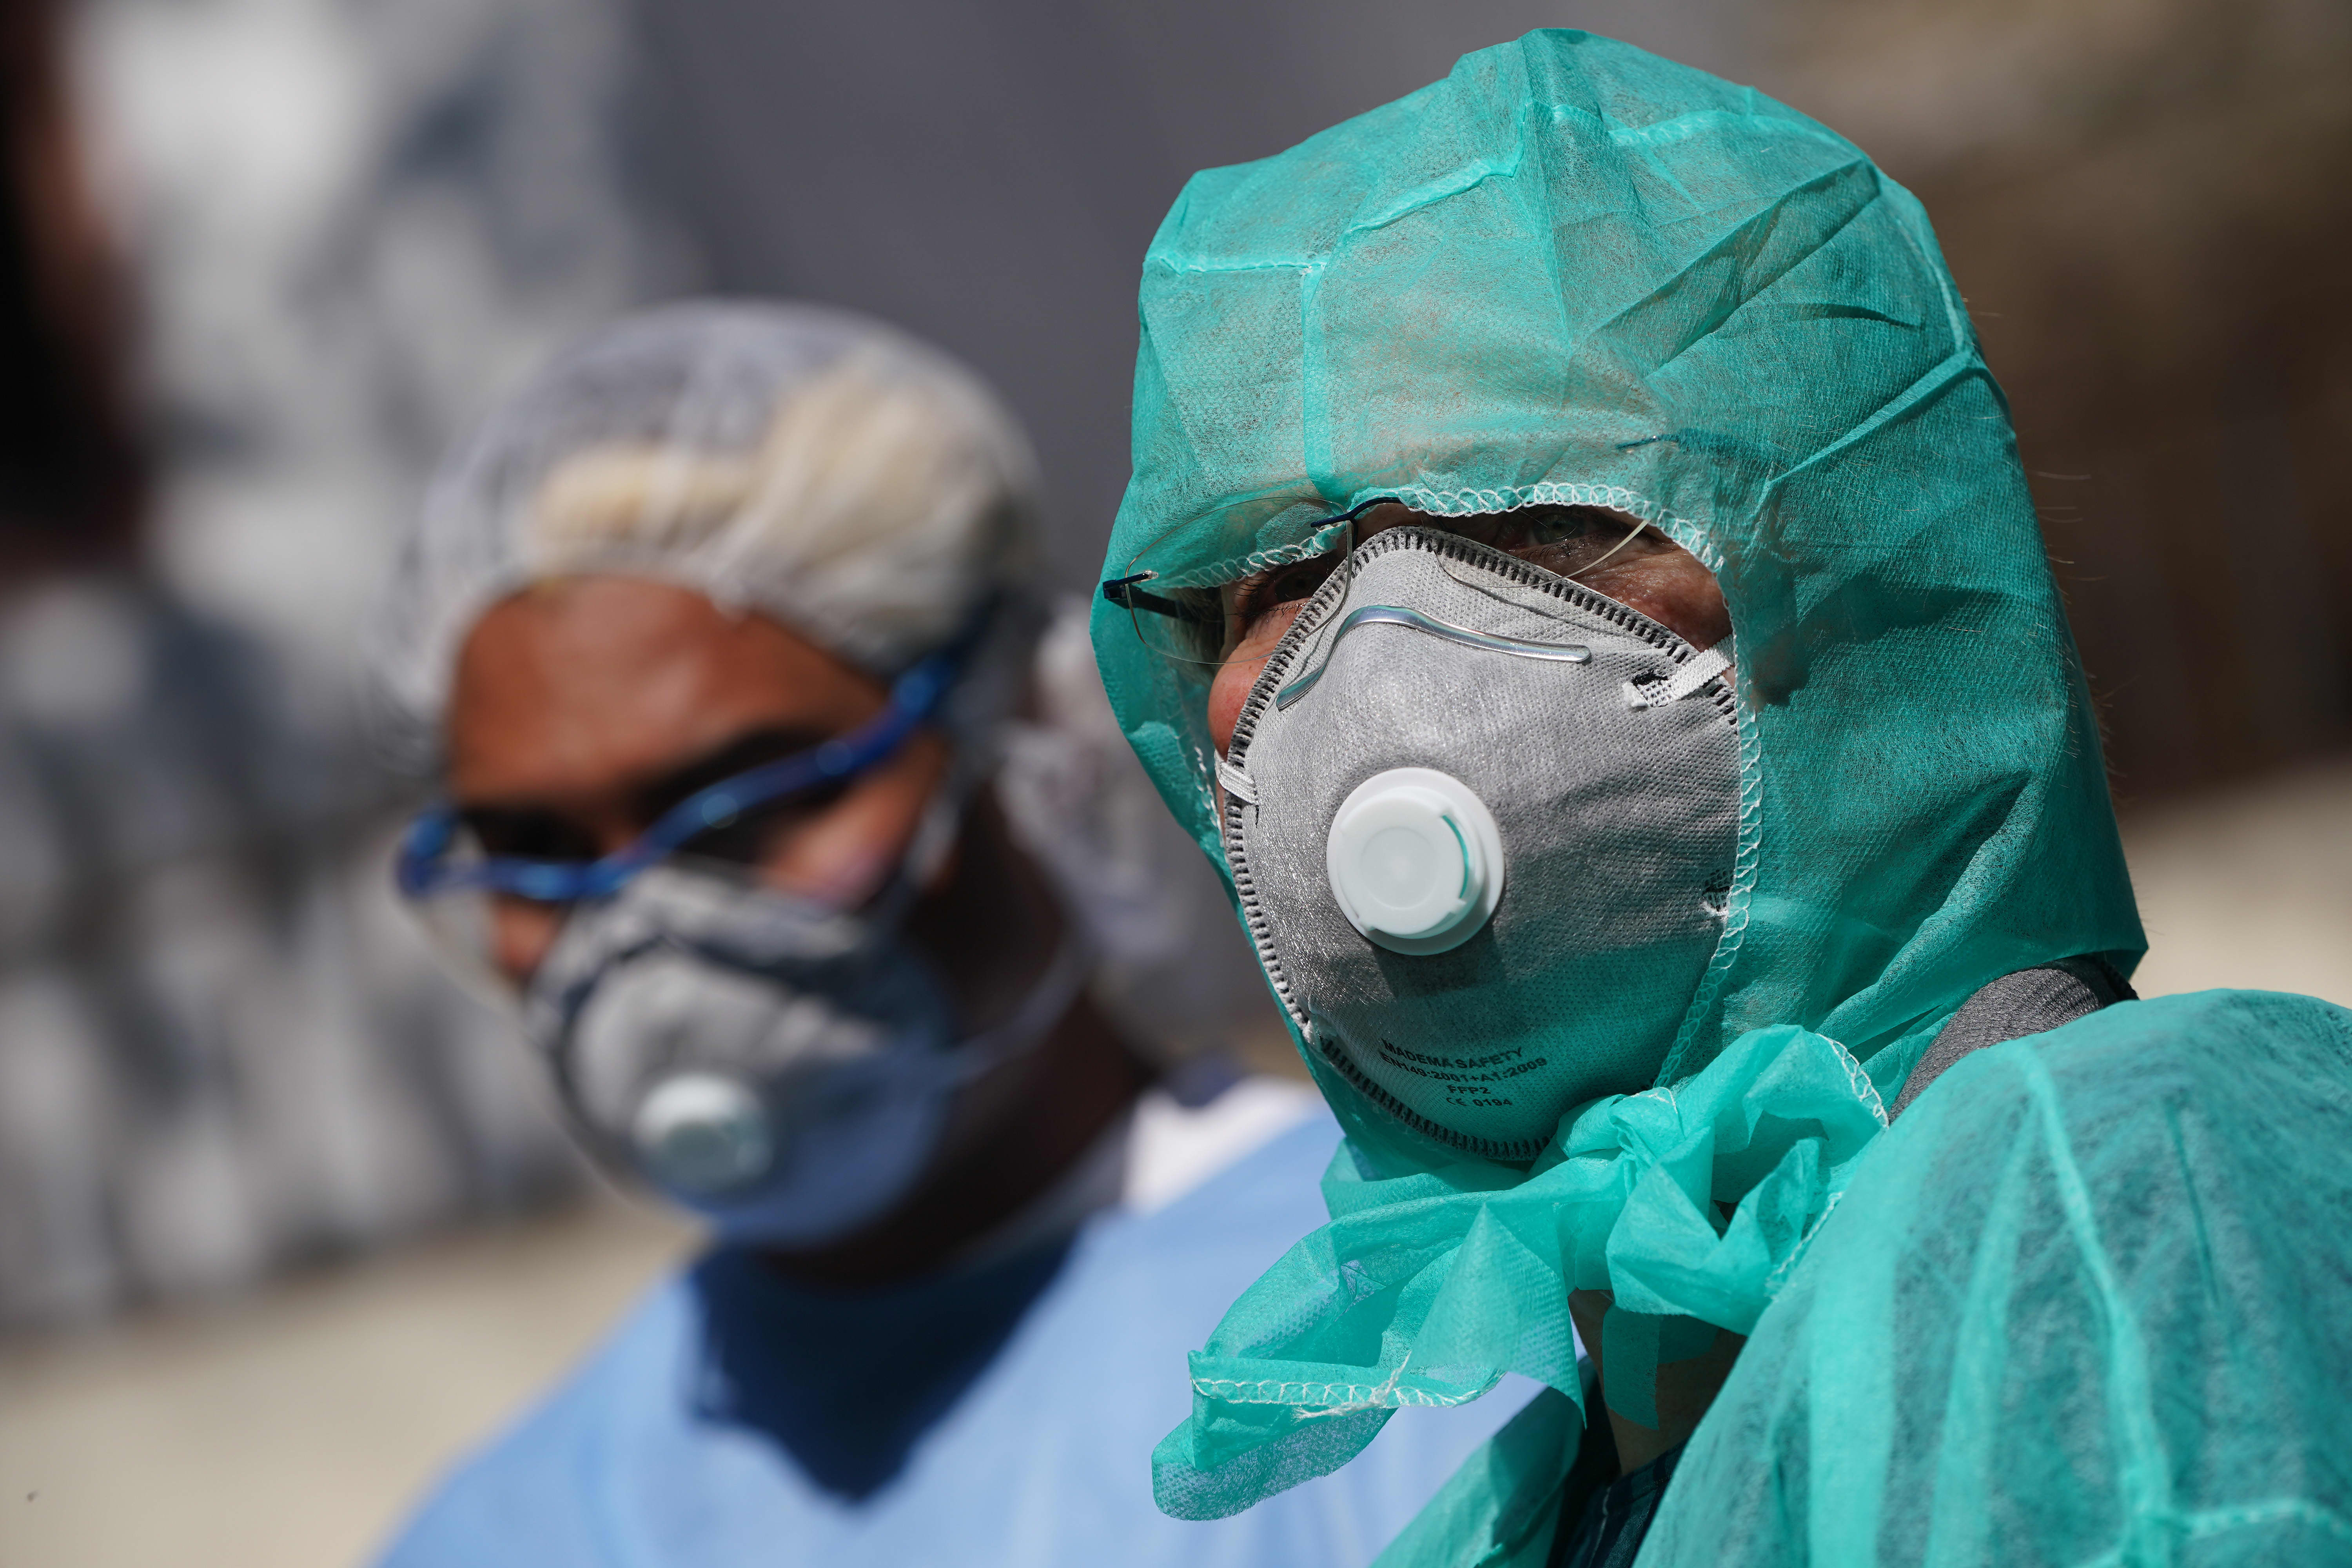 Germany has limited its coronavirus death toll but faces criticism 16